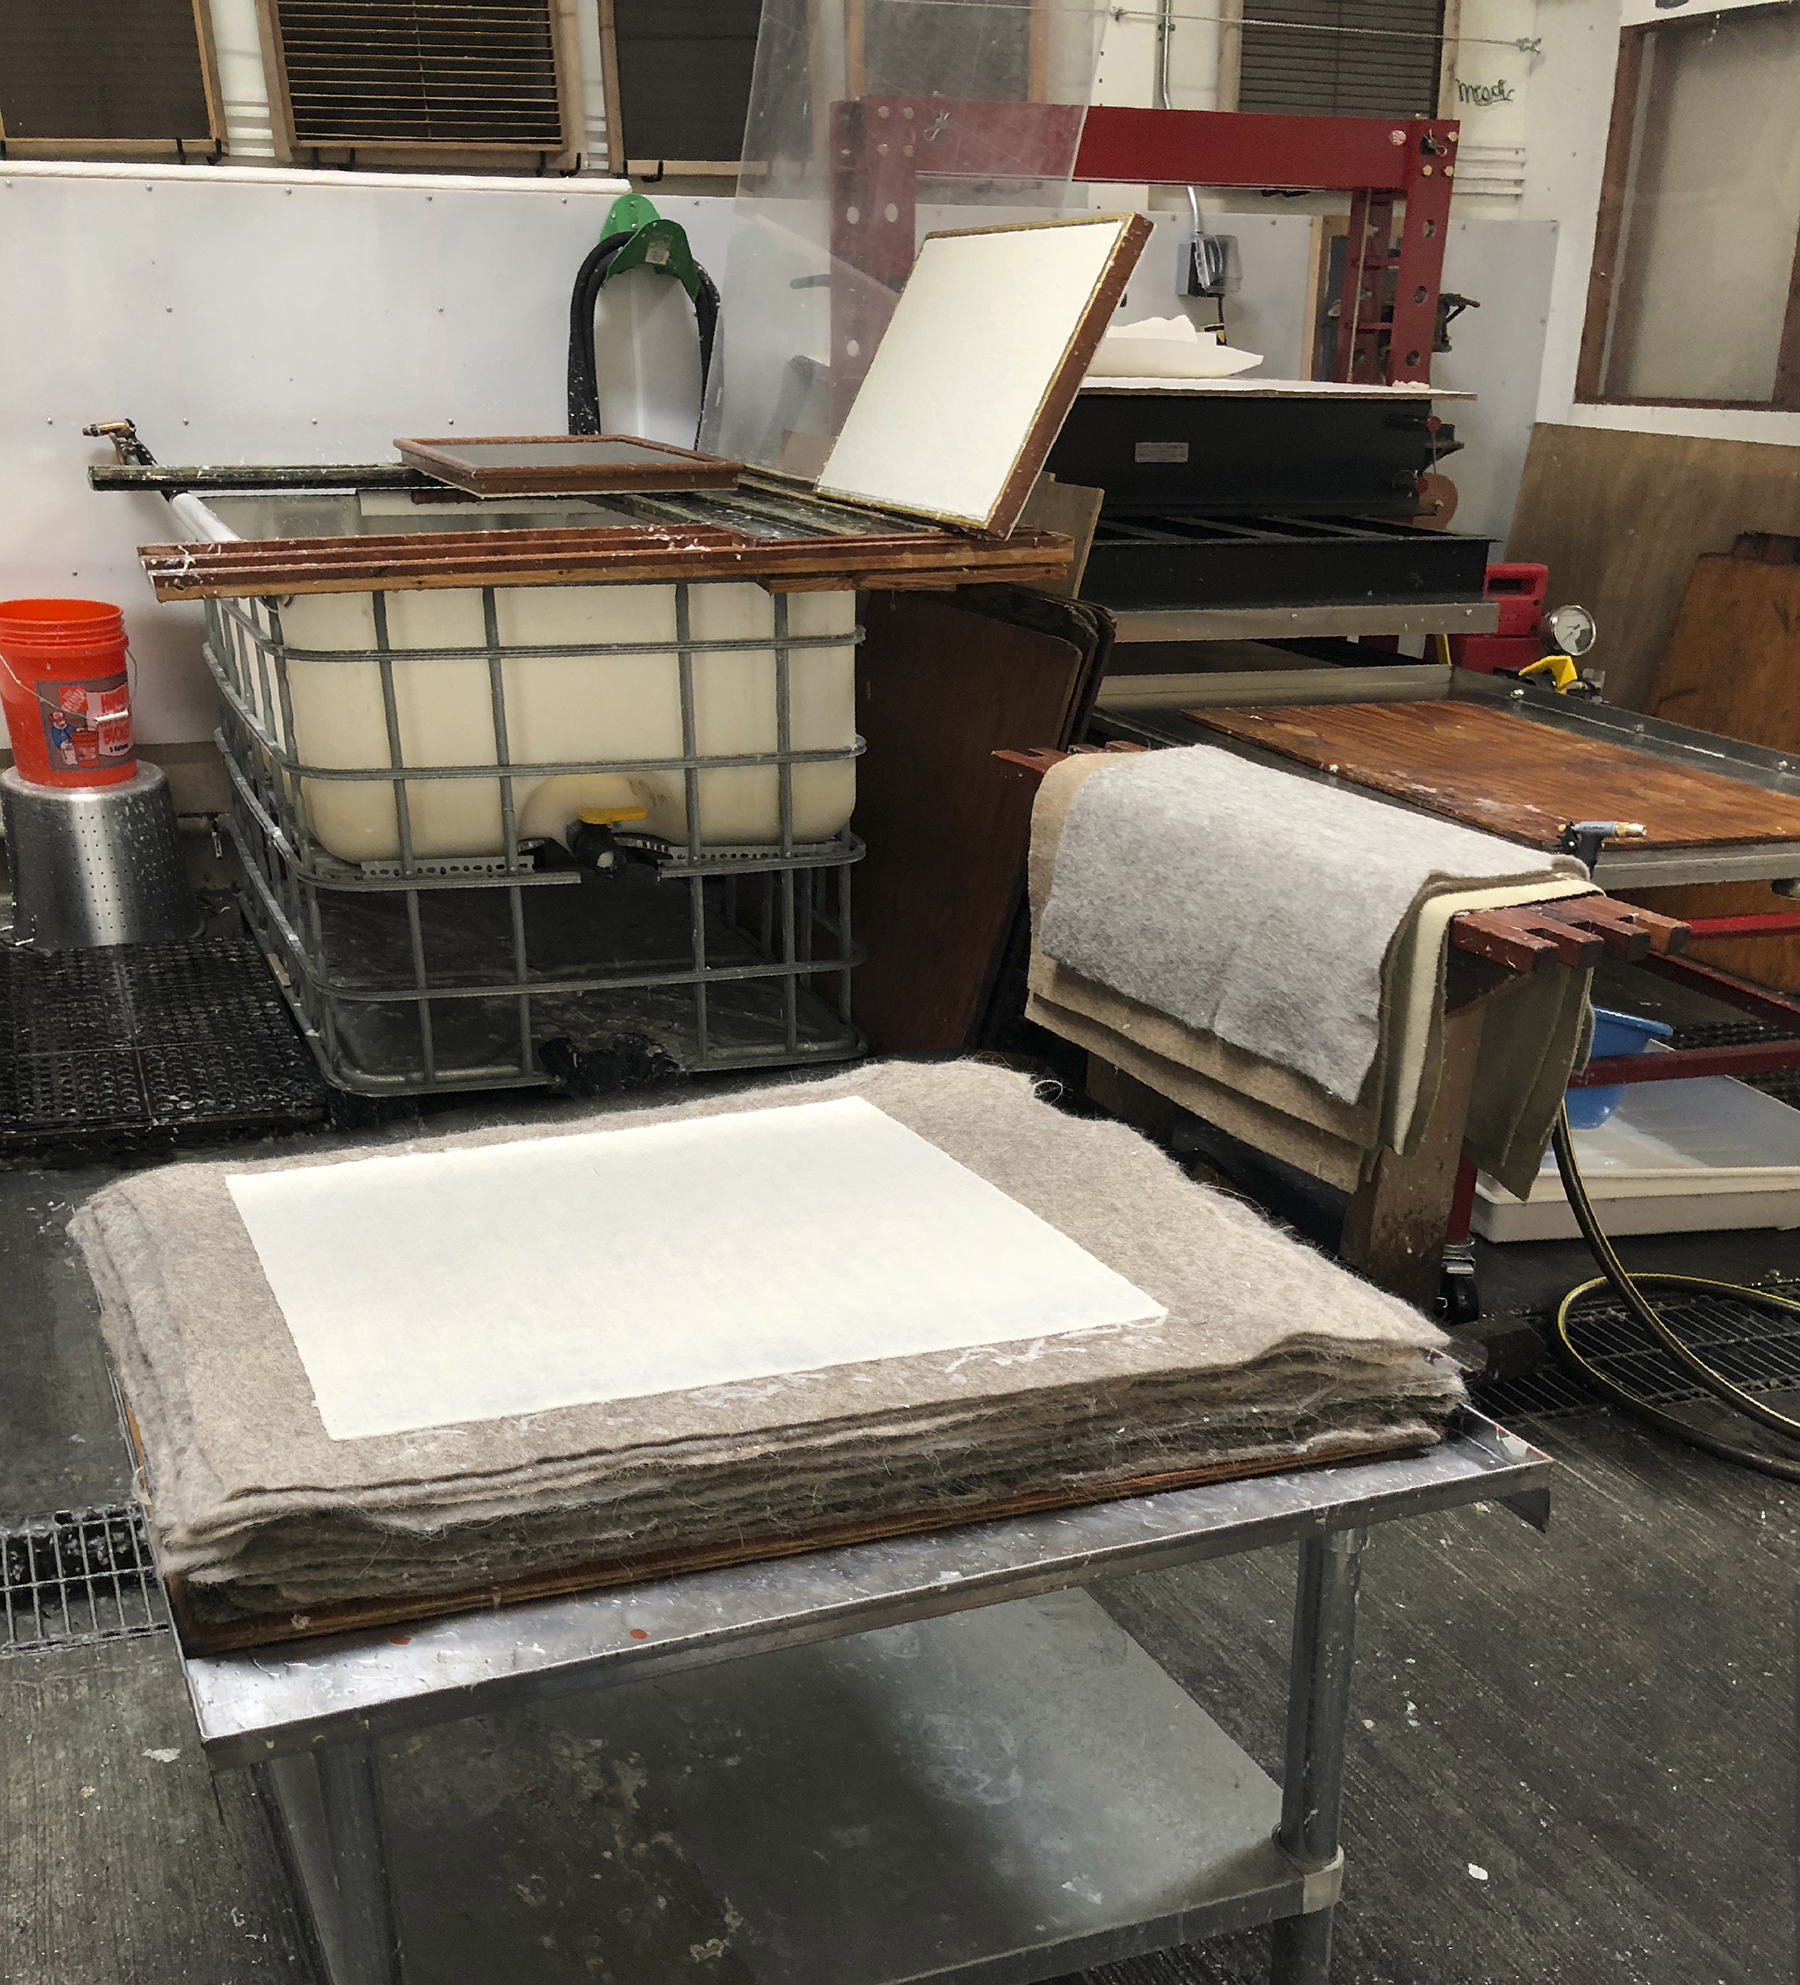 Vat, Post  and Couching table IMG_1992.jpg